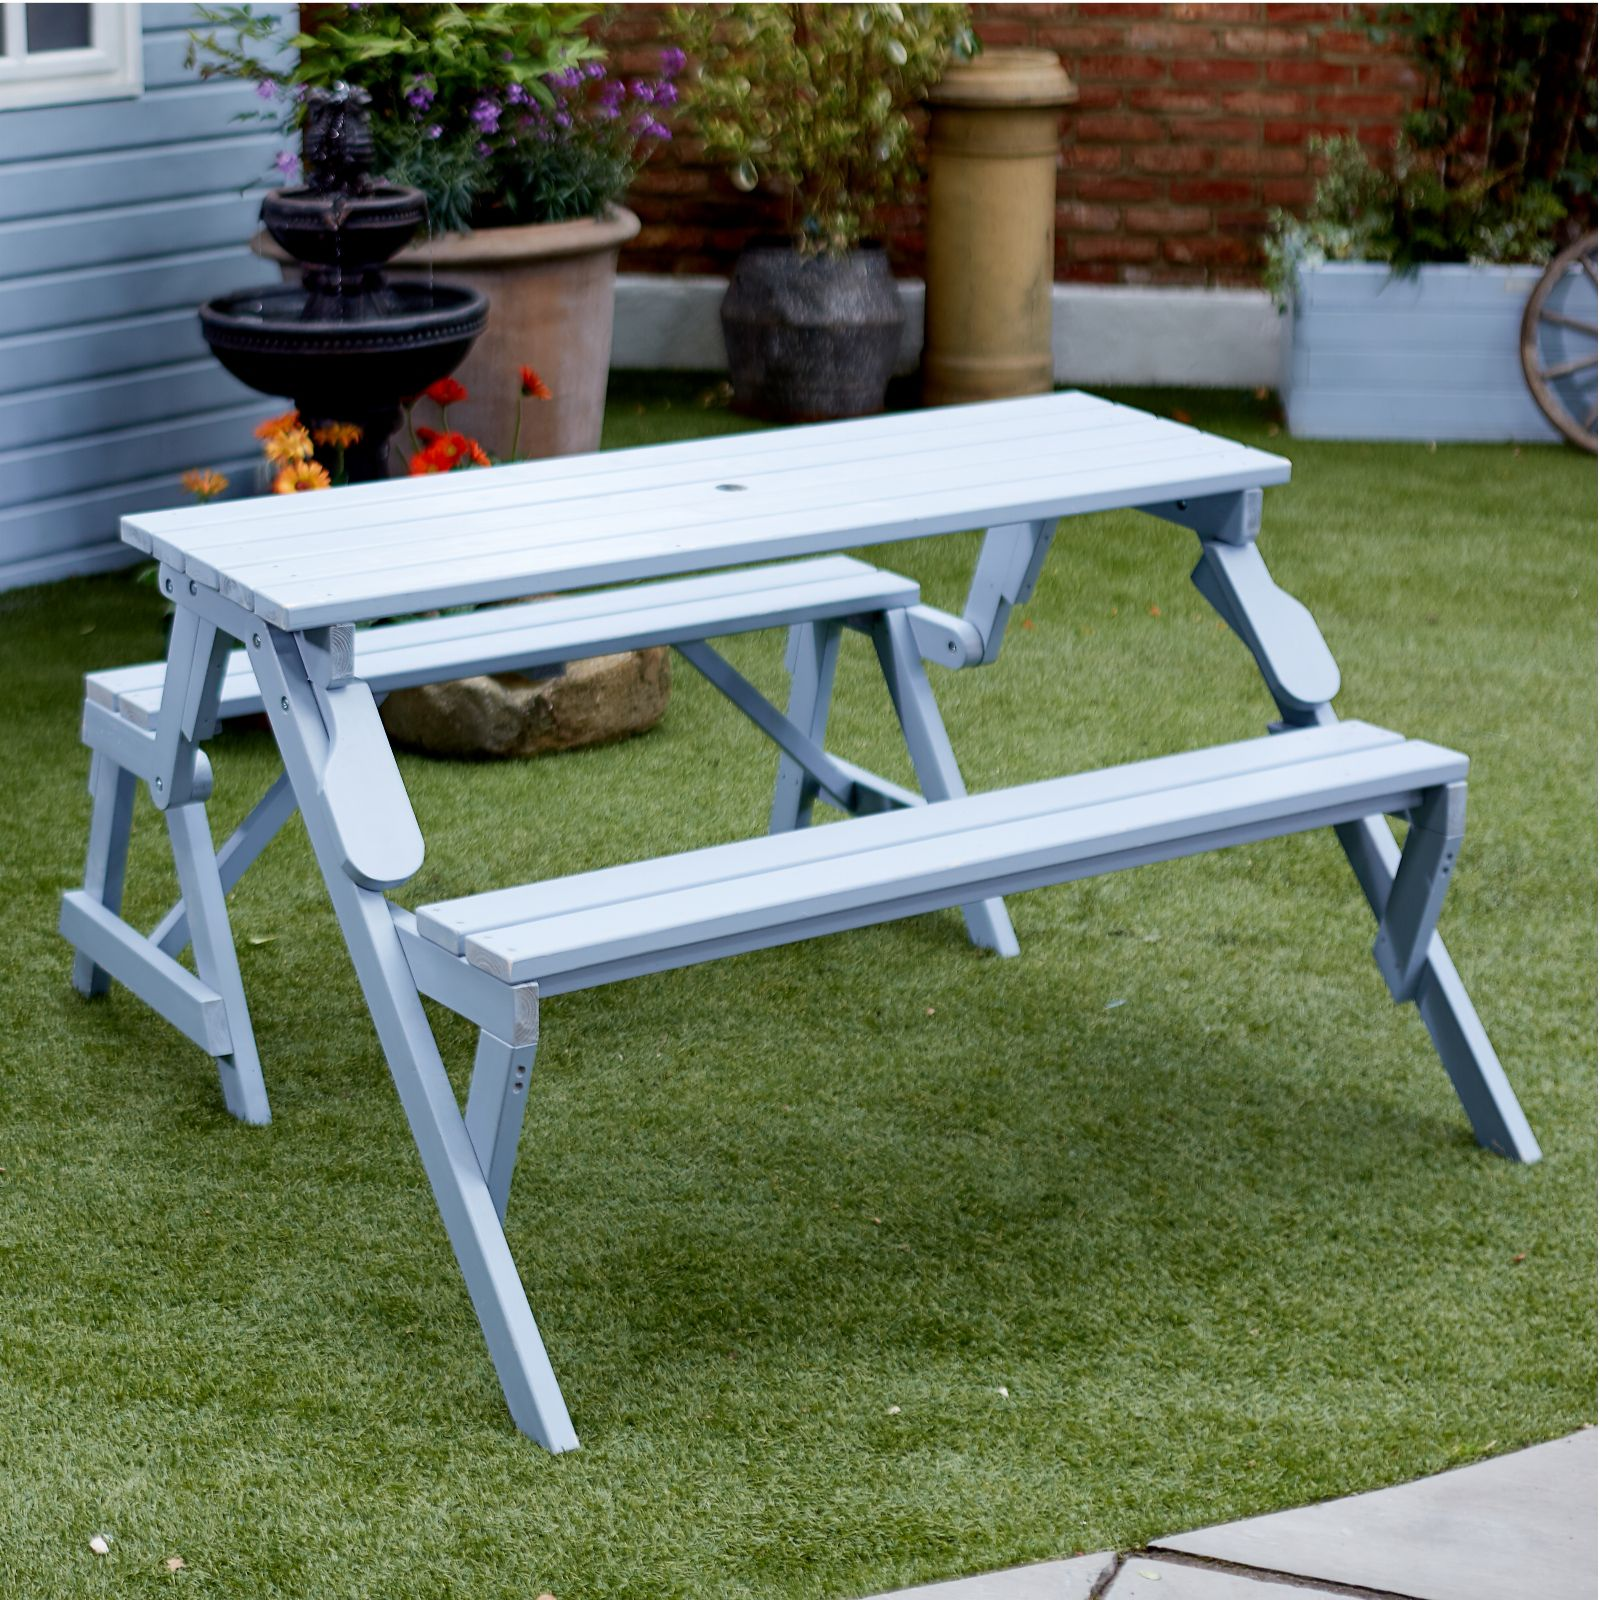 Garden Reflections Outdoor Foldable Table Amp Bench Qvc Uk